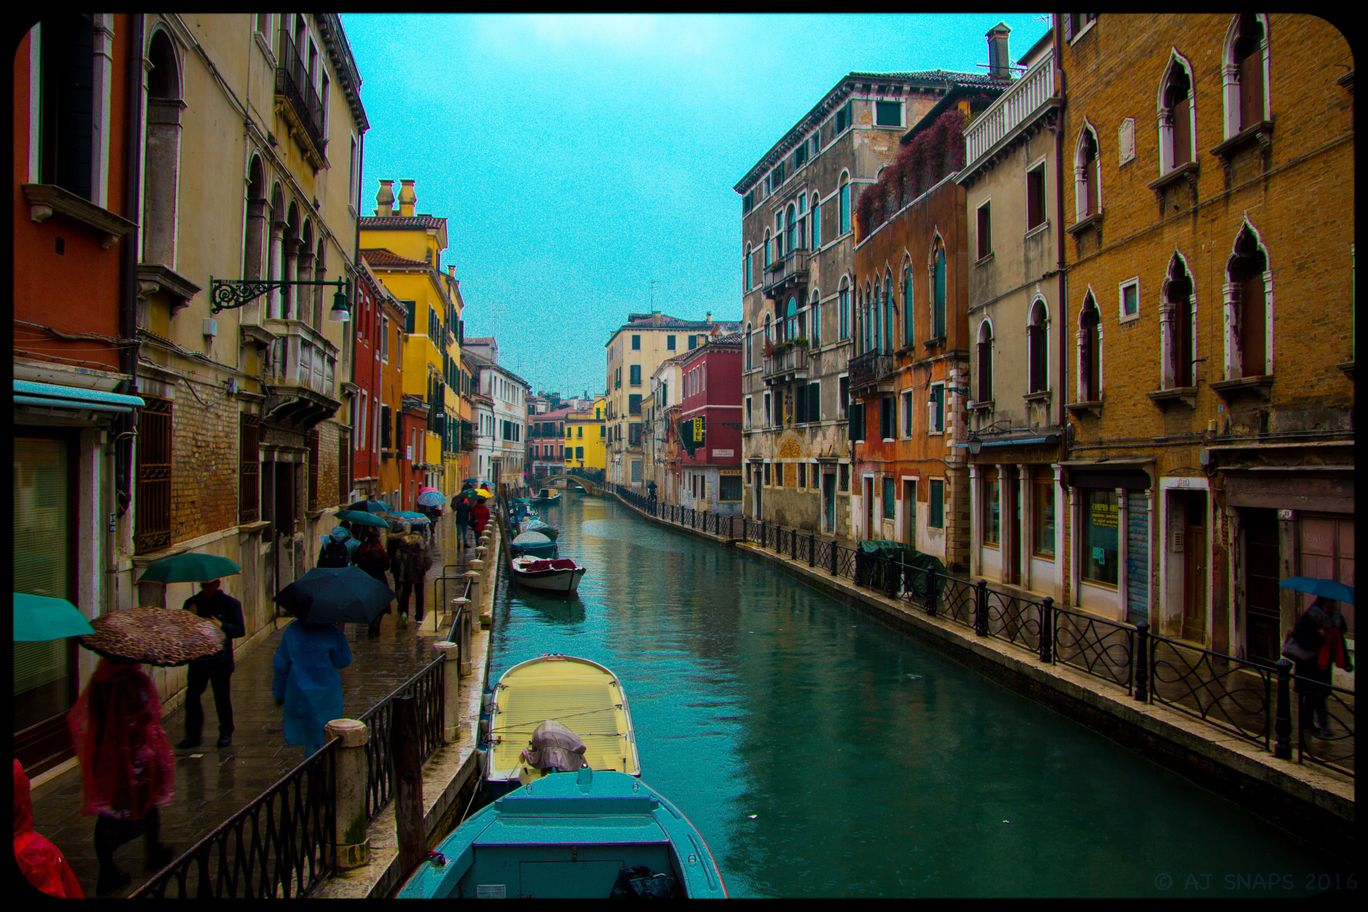 Photo of Venice By aswathi ashok